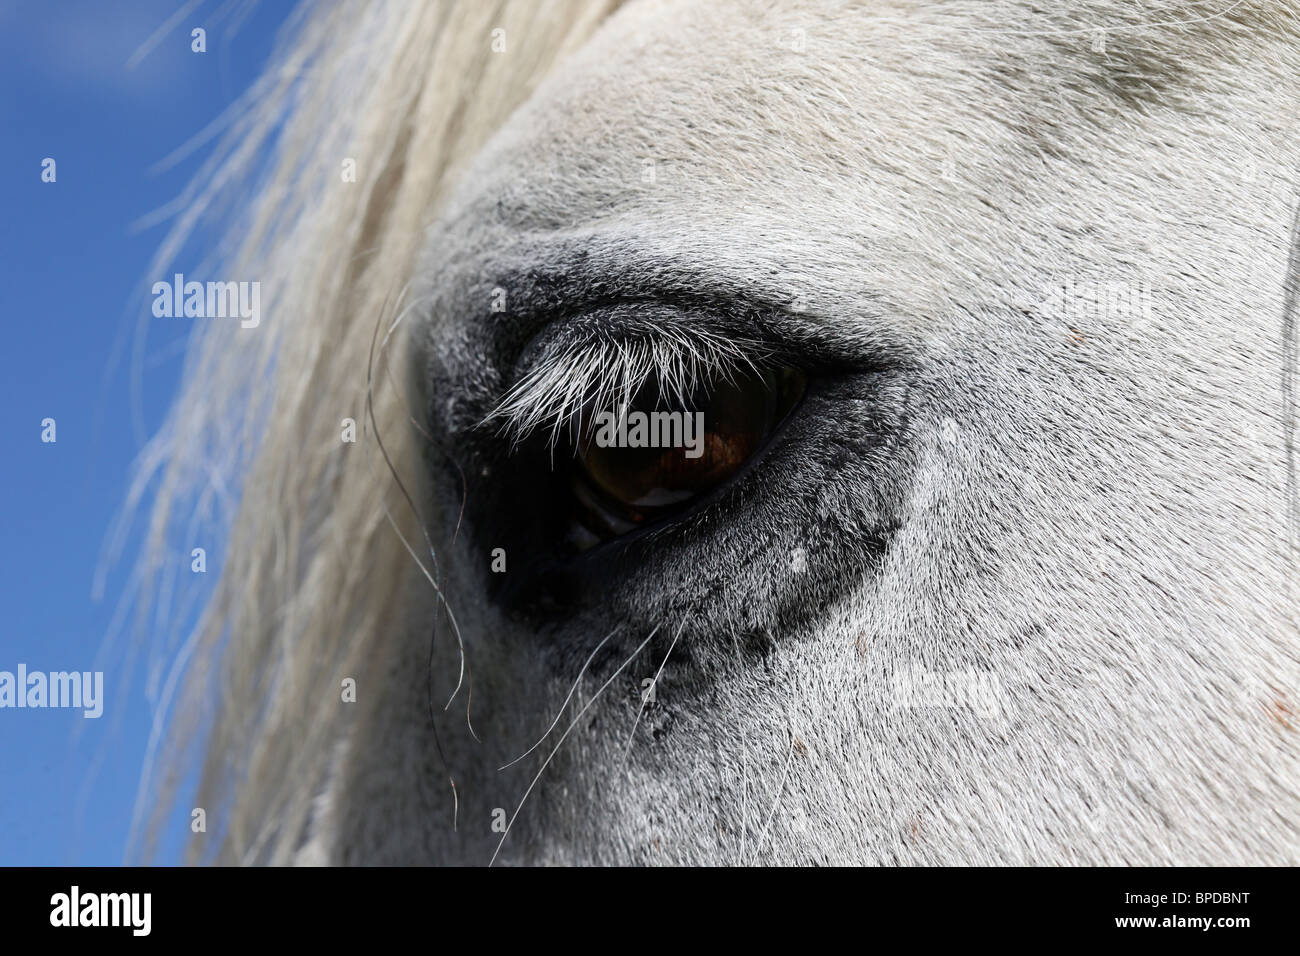 Close-up of White Highland Garron showing eye and Eye lids - Stock Image